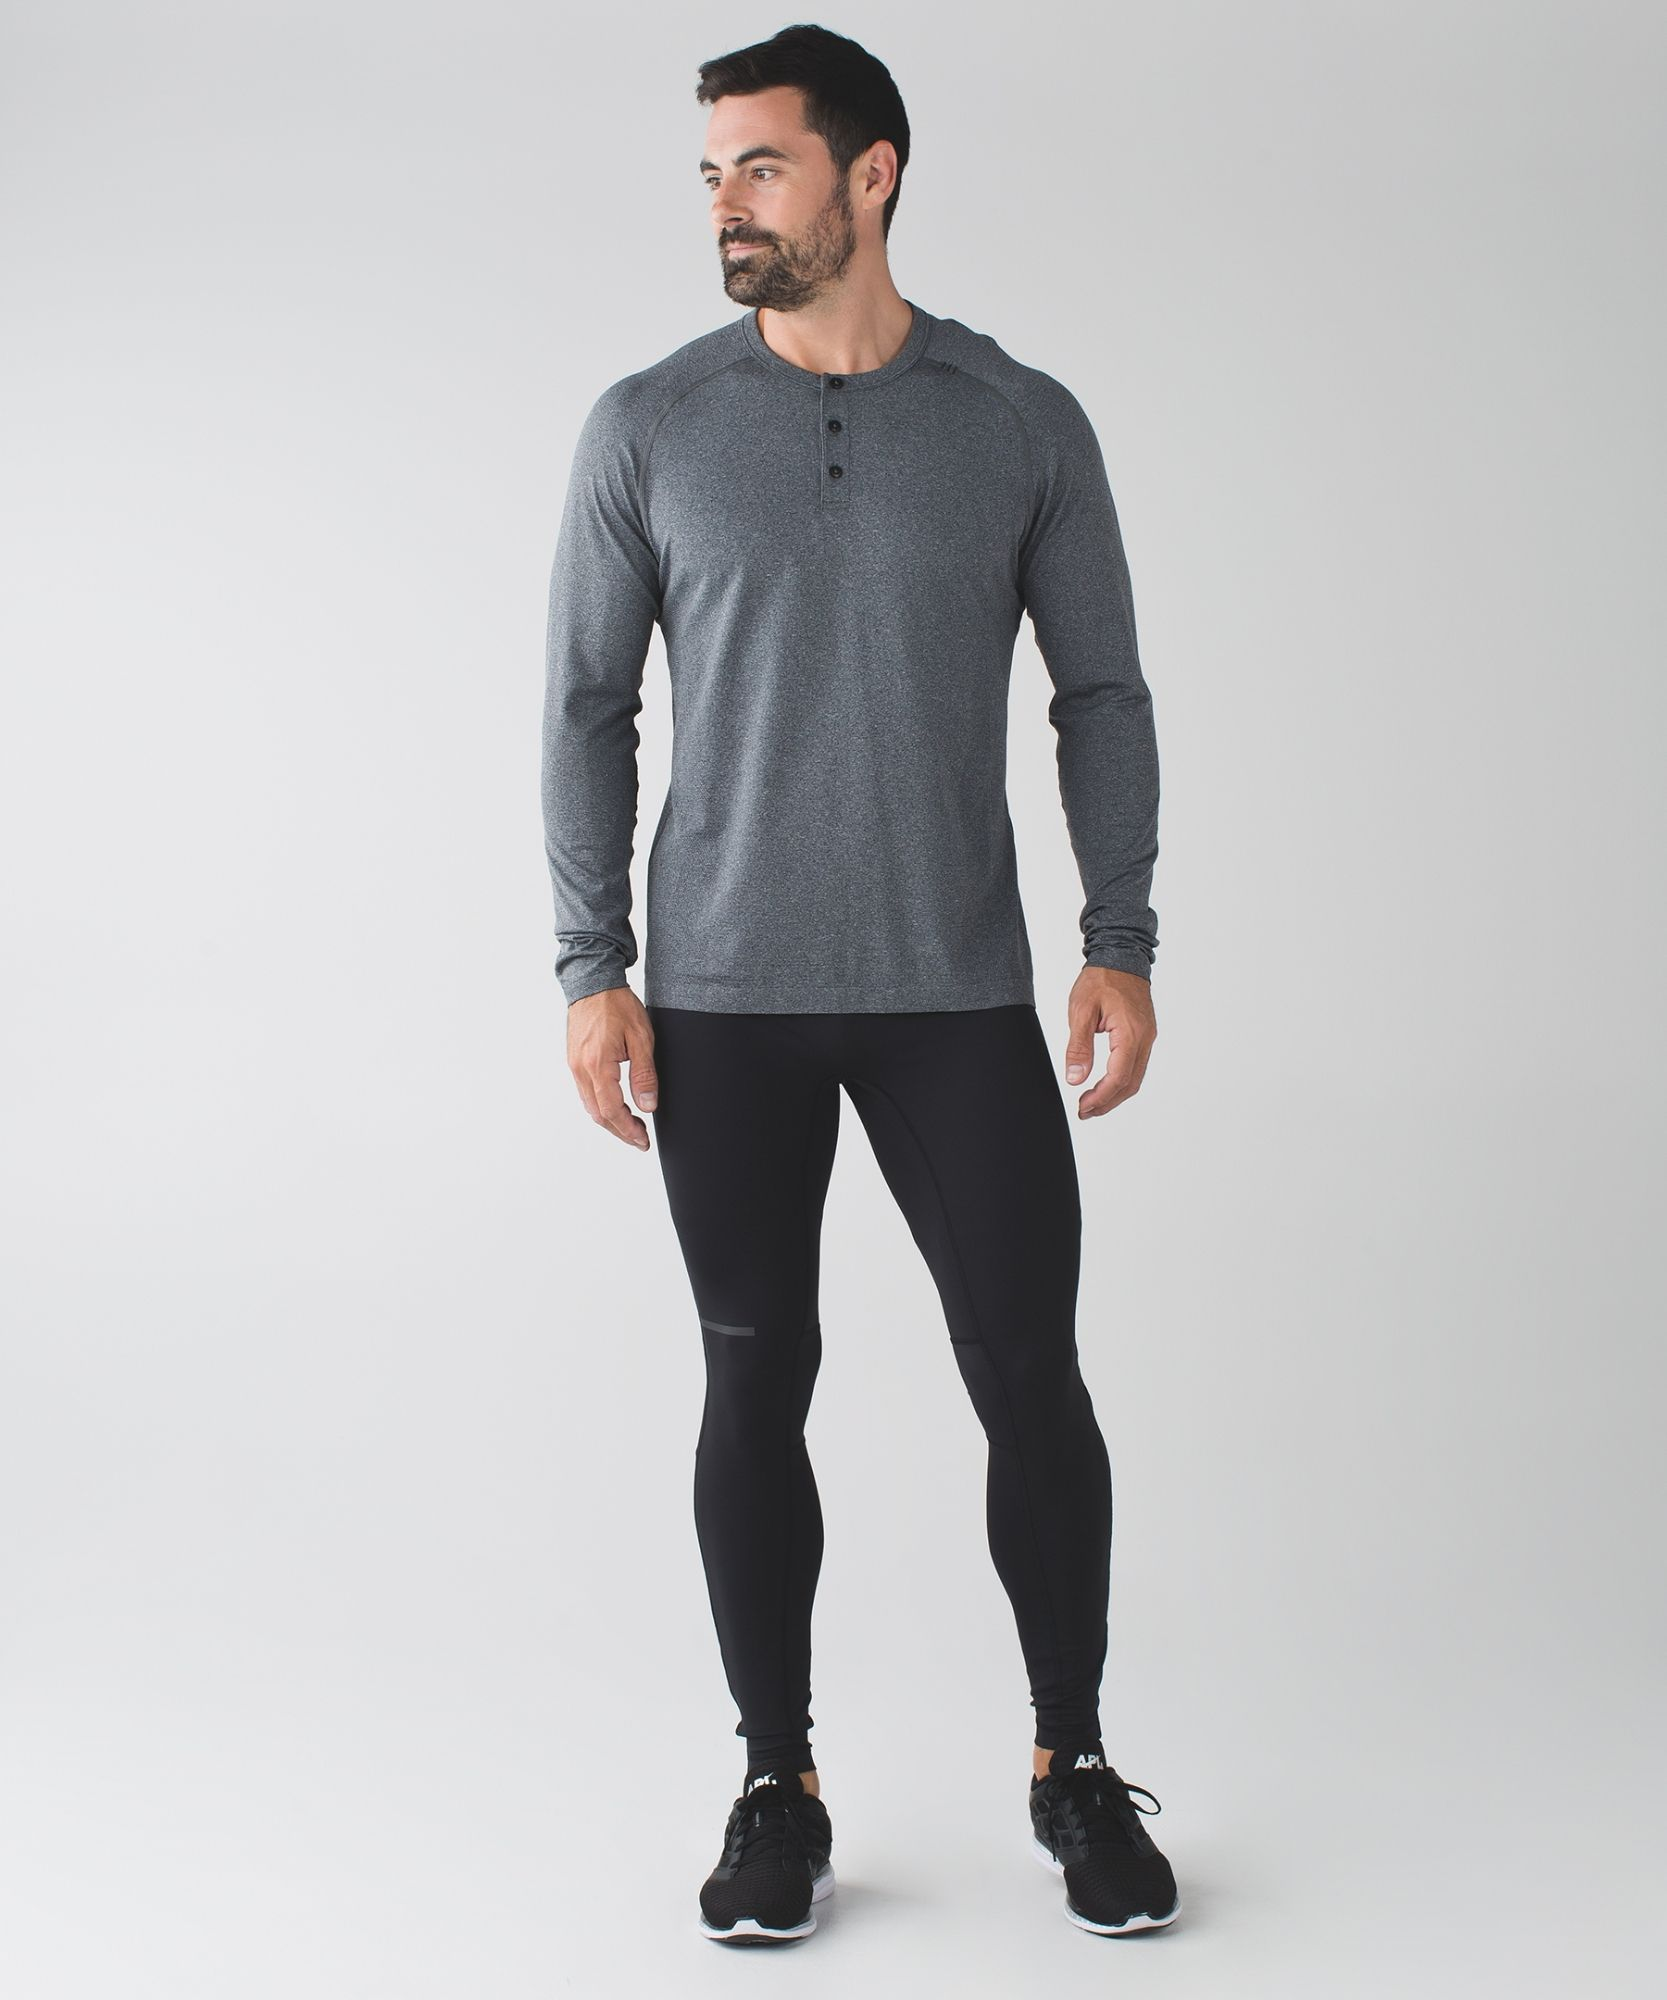 78dd9e0046 We made these run tights to give you light element protection. | JDC ...